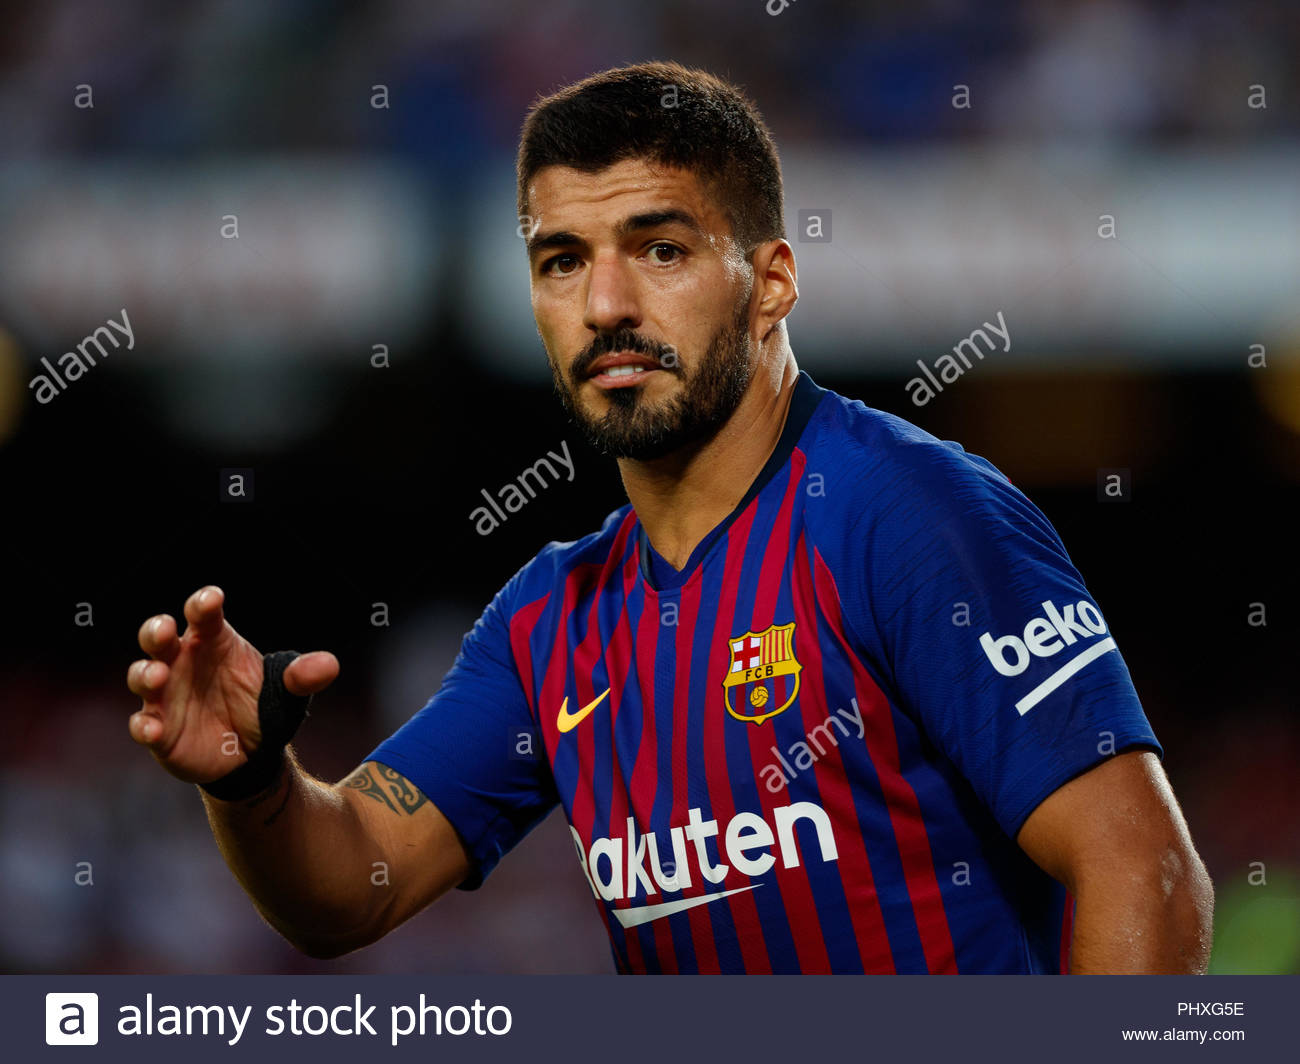 Luis Suarez Stock Wallpaper Styles Wallpapers 1300x1064